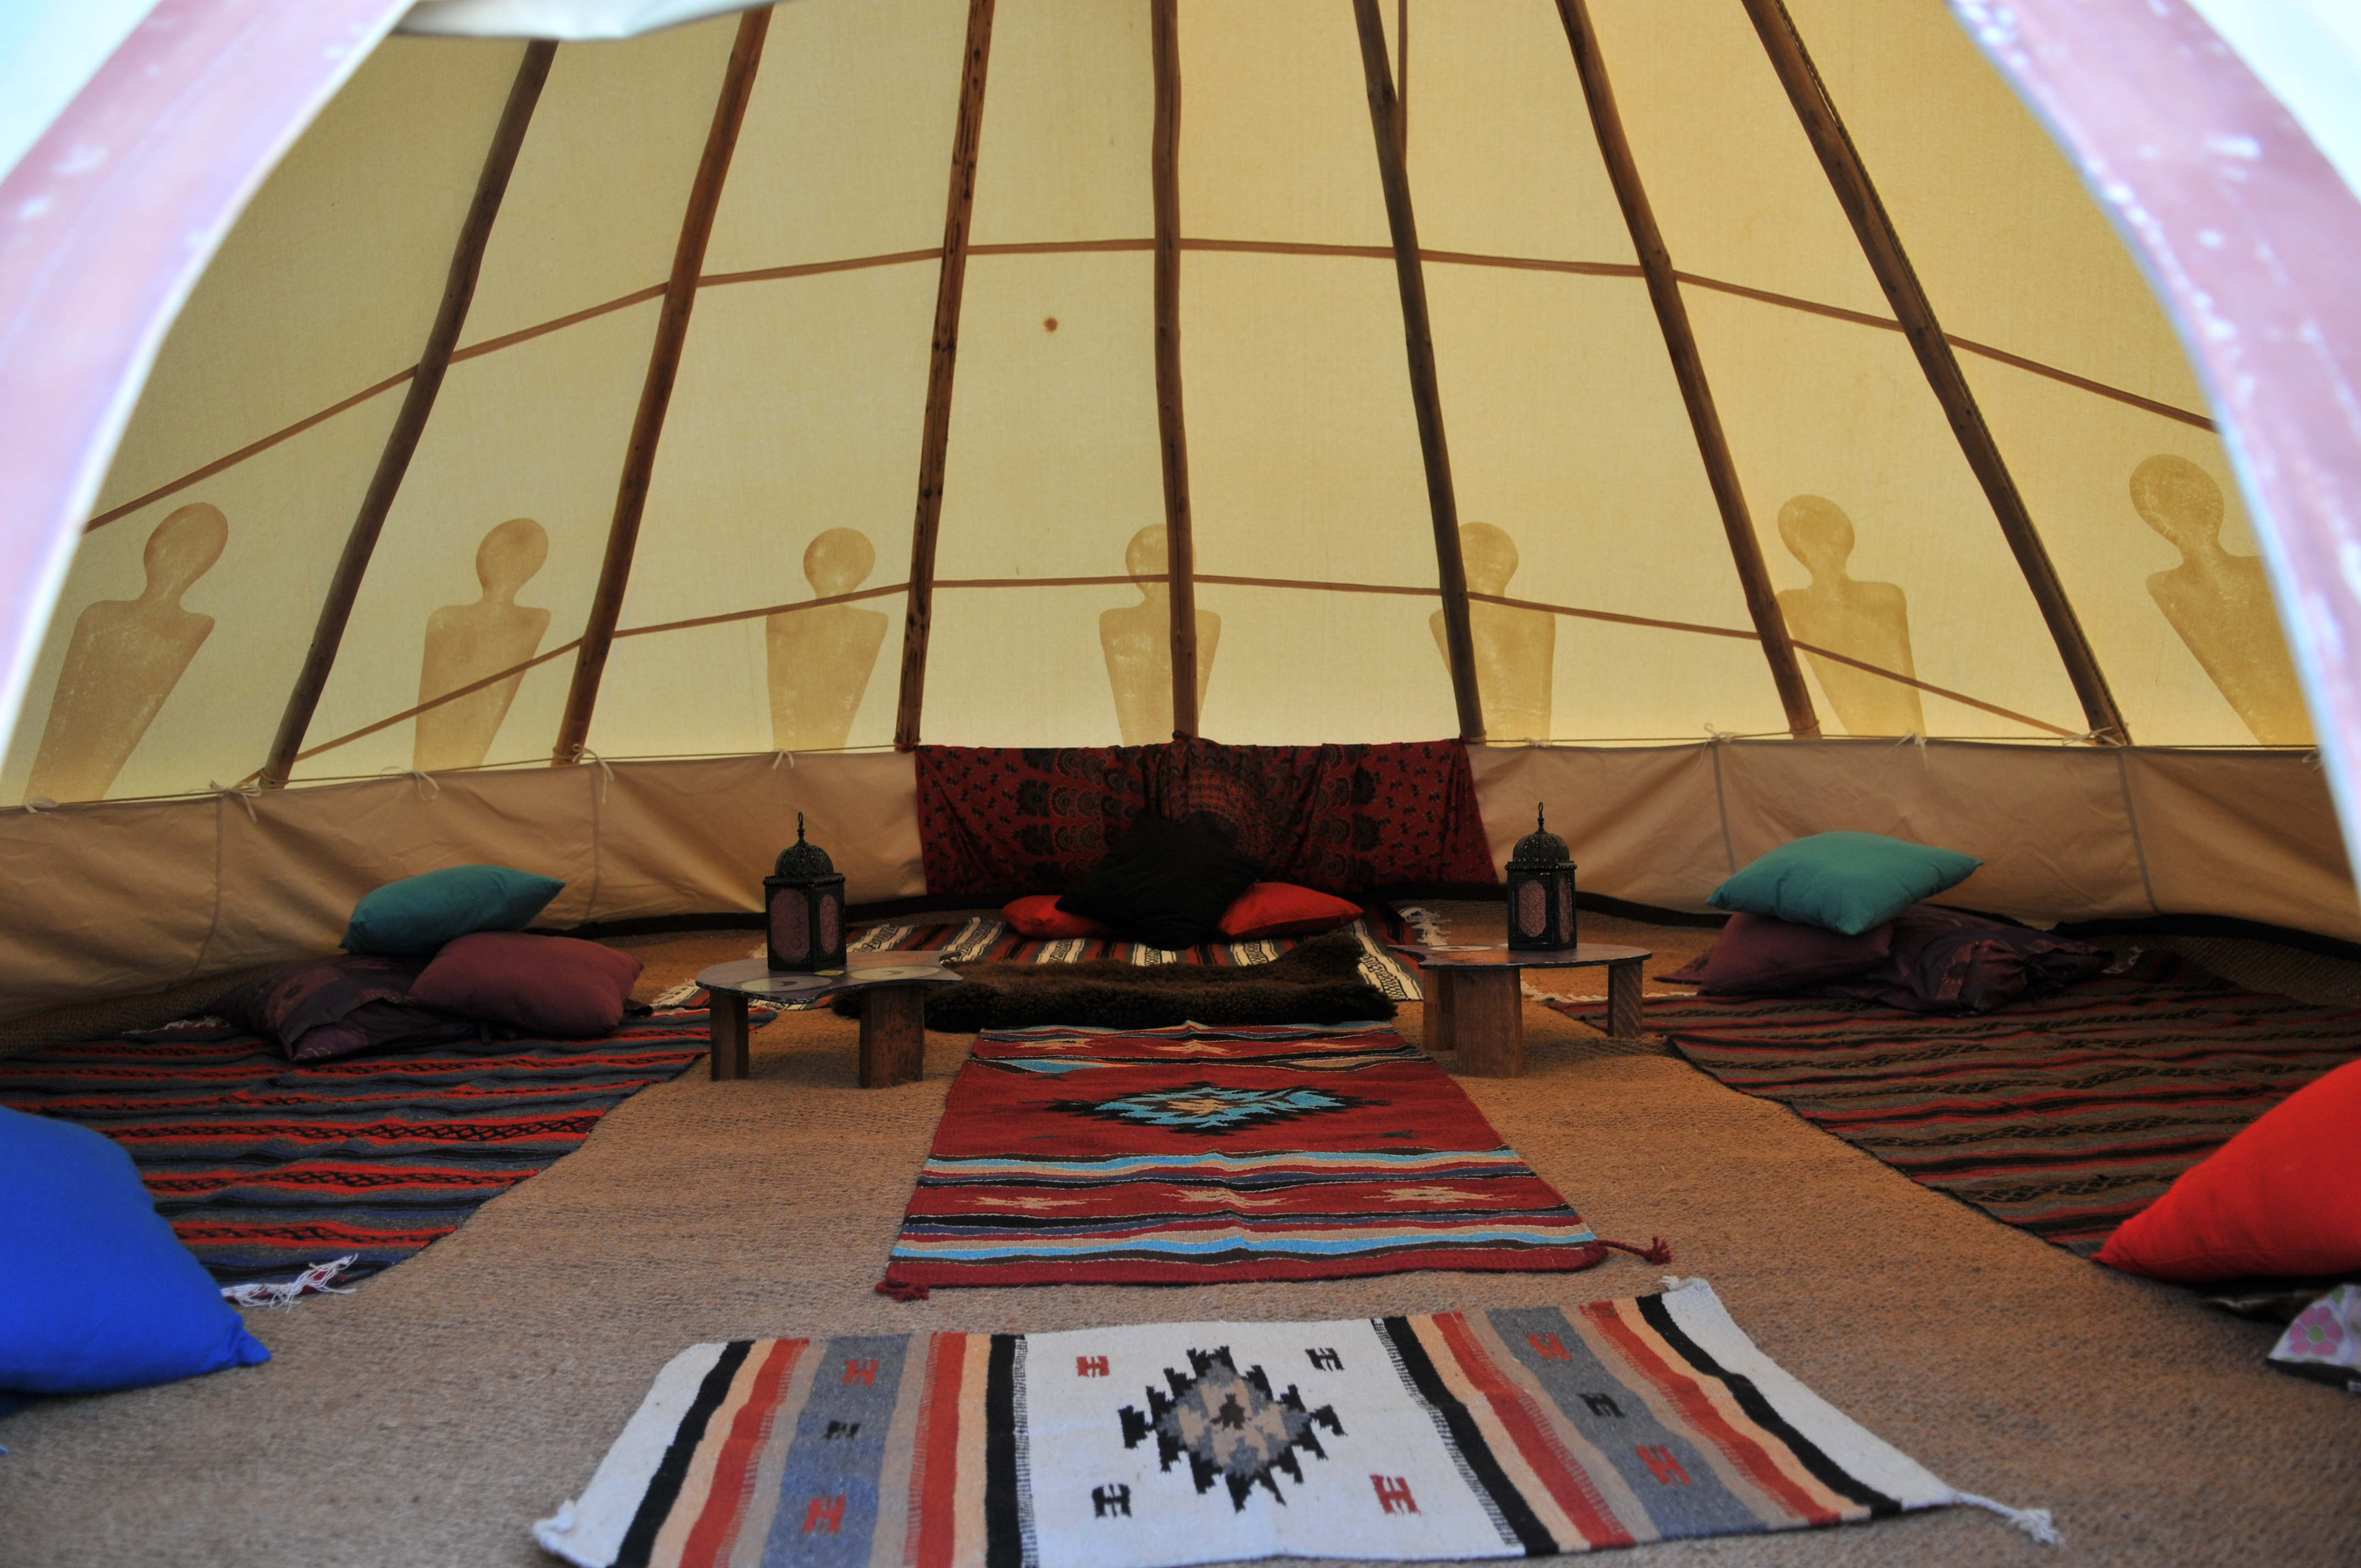 Picture depicts one of our larger tipis with luxury furnishings. & Isle of Wight Festival 2018 | Eveu0027s Tipis